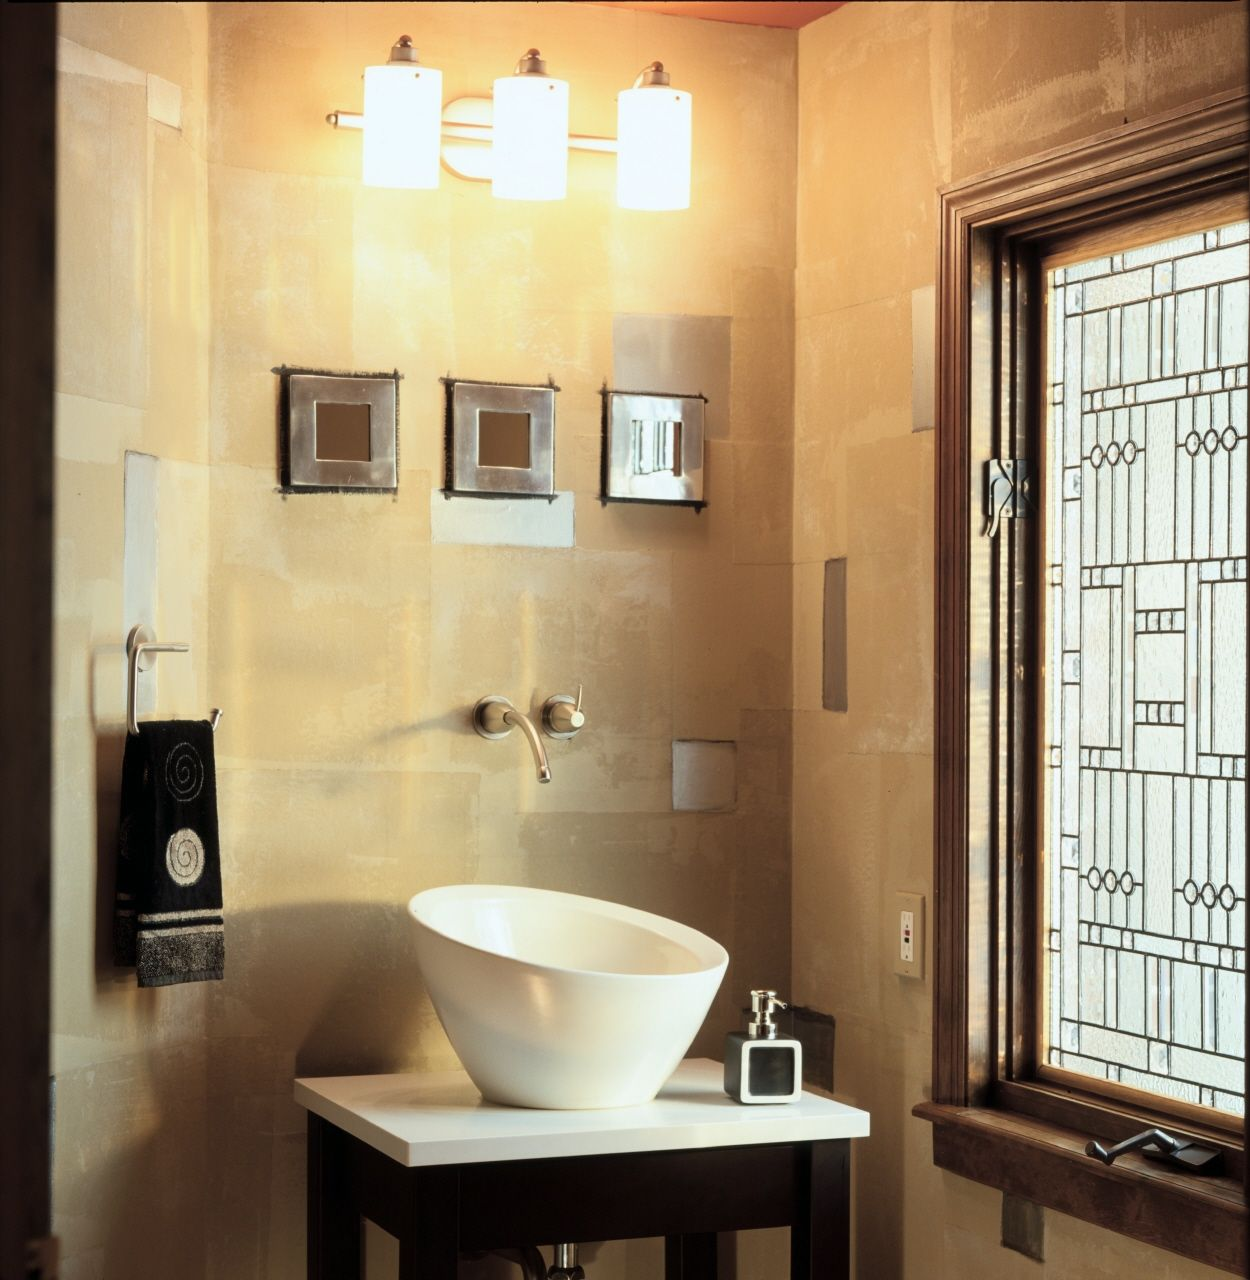 9 Great Design Ideas for Half Baths and Powder Rooms | Pinterest ...